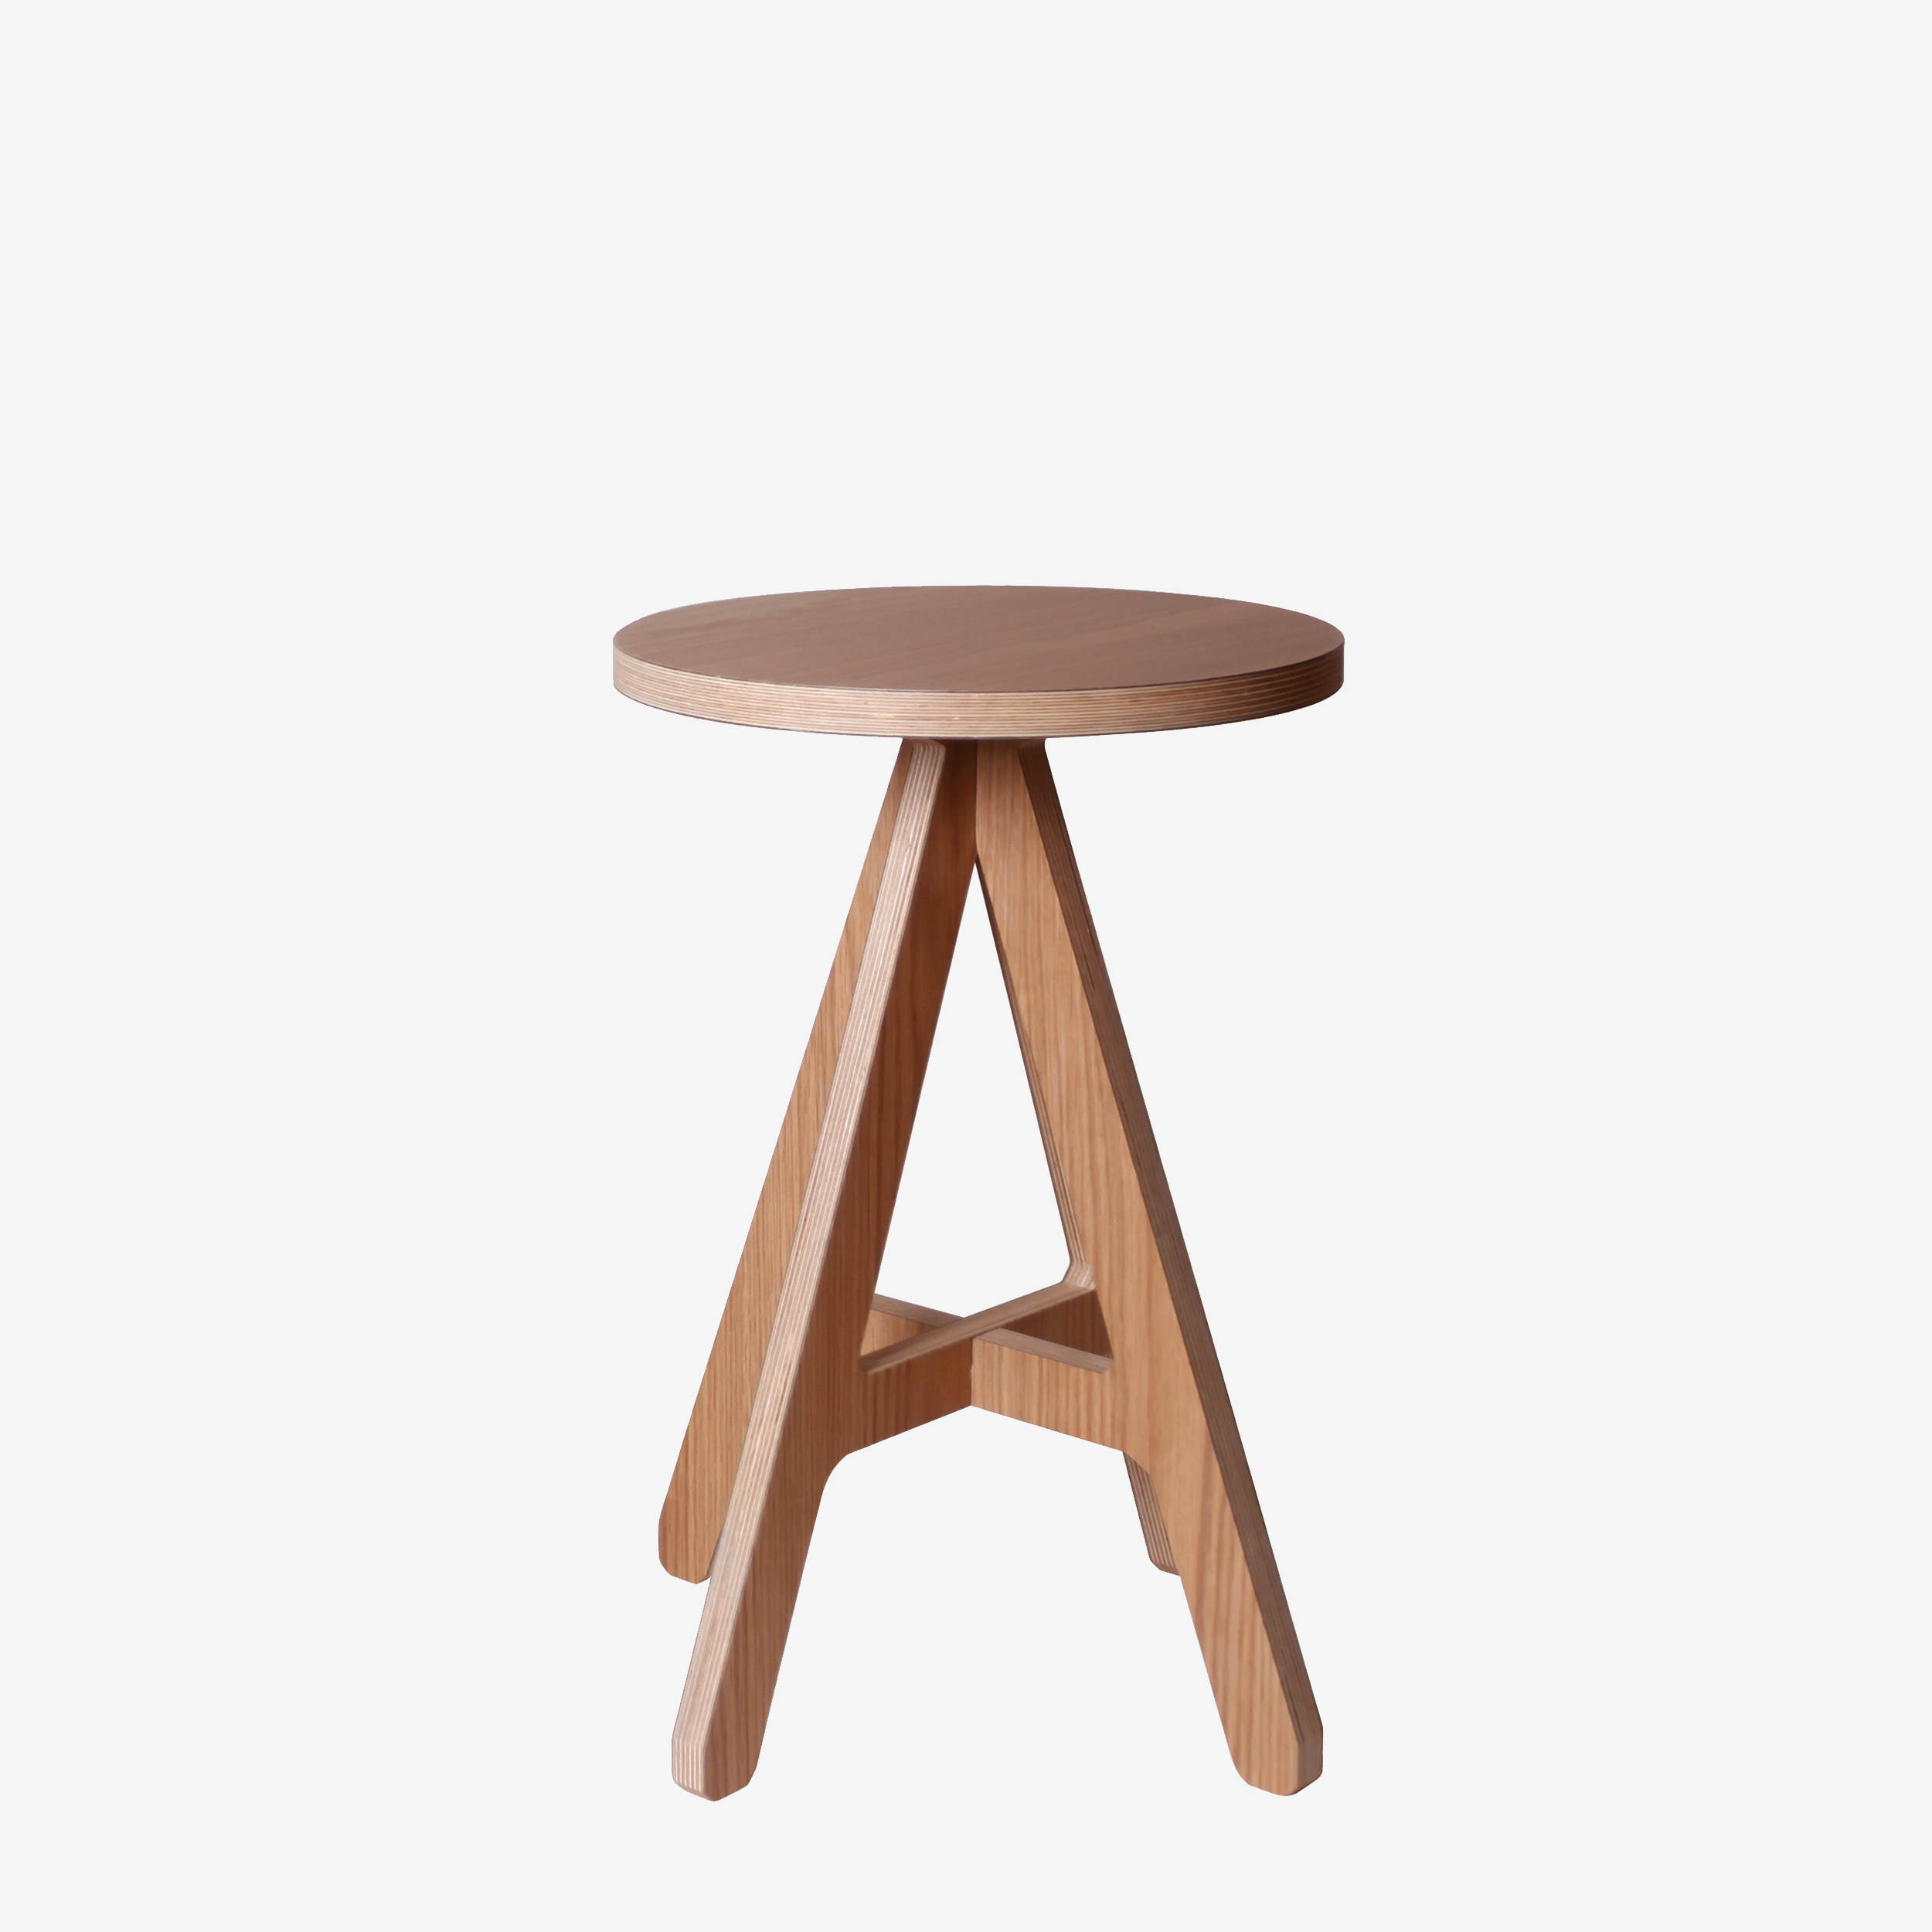 Modern Wood Stool A Stool British Design Byalex